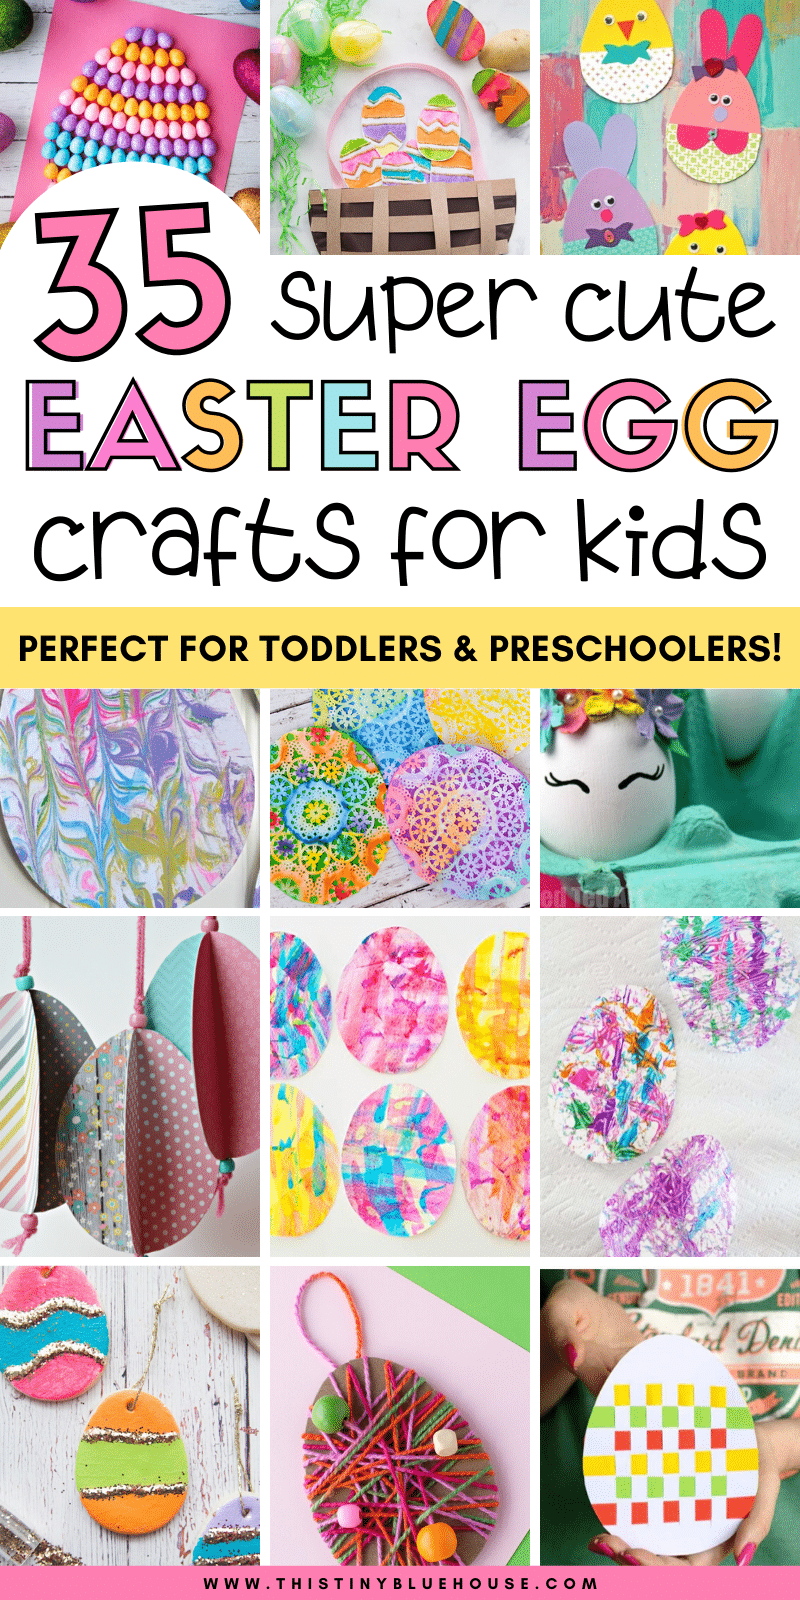 Celebrate Easter with the kids by making one of these super cute Easter egg crafts for kids. These 35 easy crafts are great for even the youngest kids including toddlers and preschoolers. #eastereggcrafts #eastercrafts #eastercraftsfortoddlers #eastercraftsforpreschoolers #easyeastereggcraftsforkids